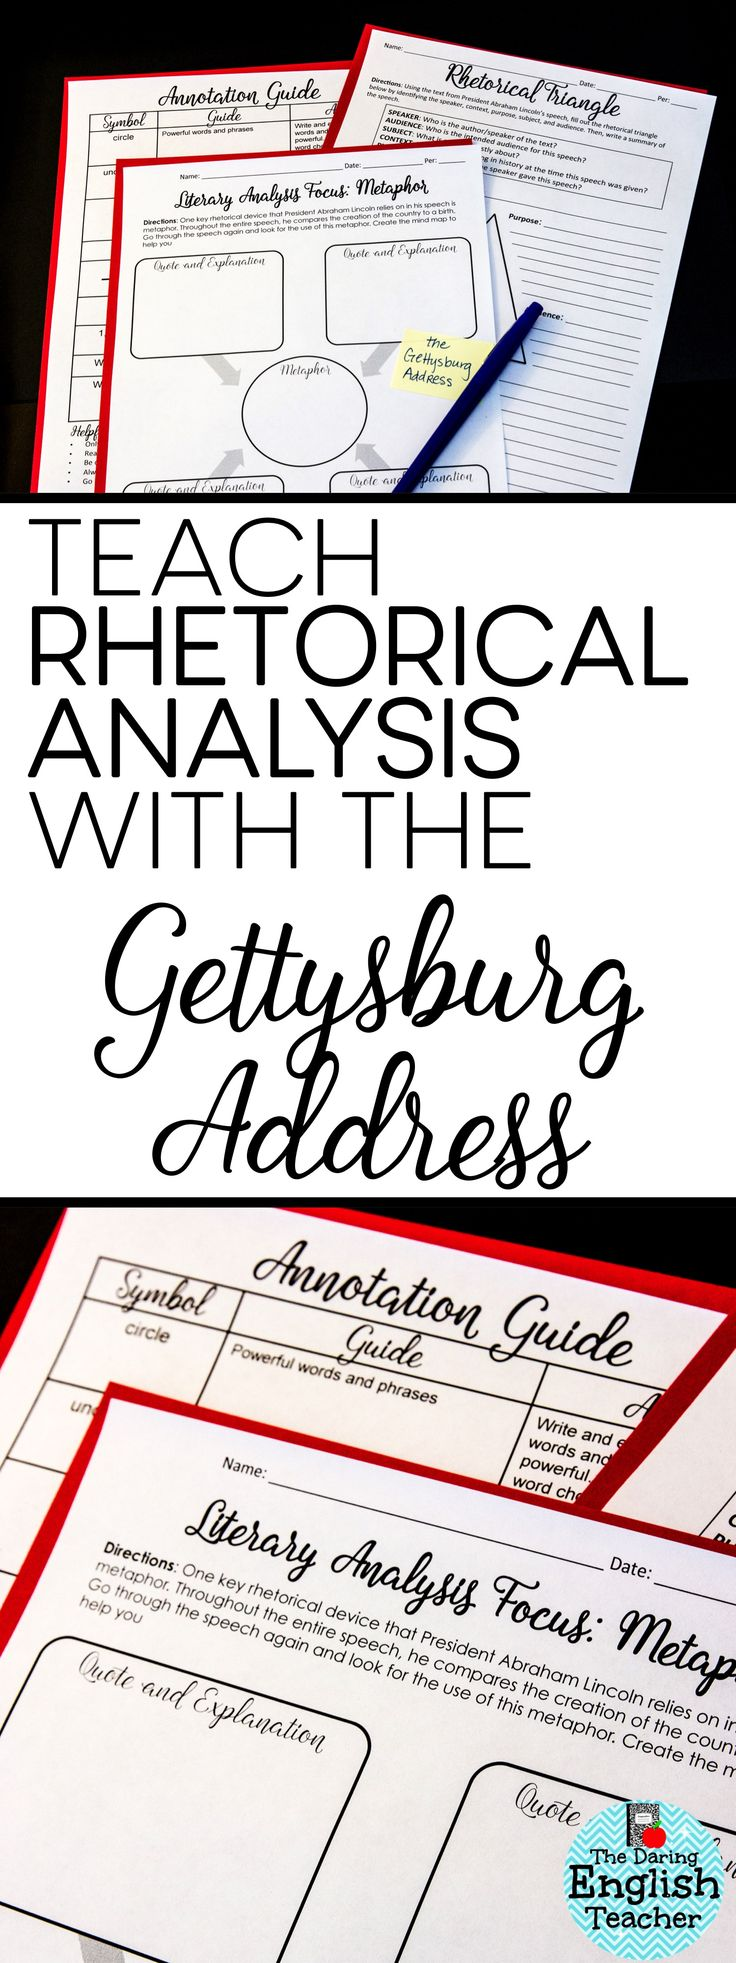 best ideas about american literature history of teach rhetorical analysis rhetorical appeals and rhetorical devices using the gettysburg address american